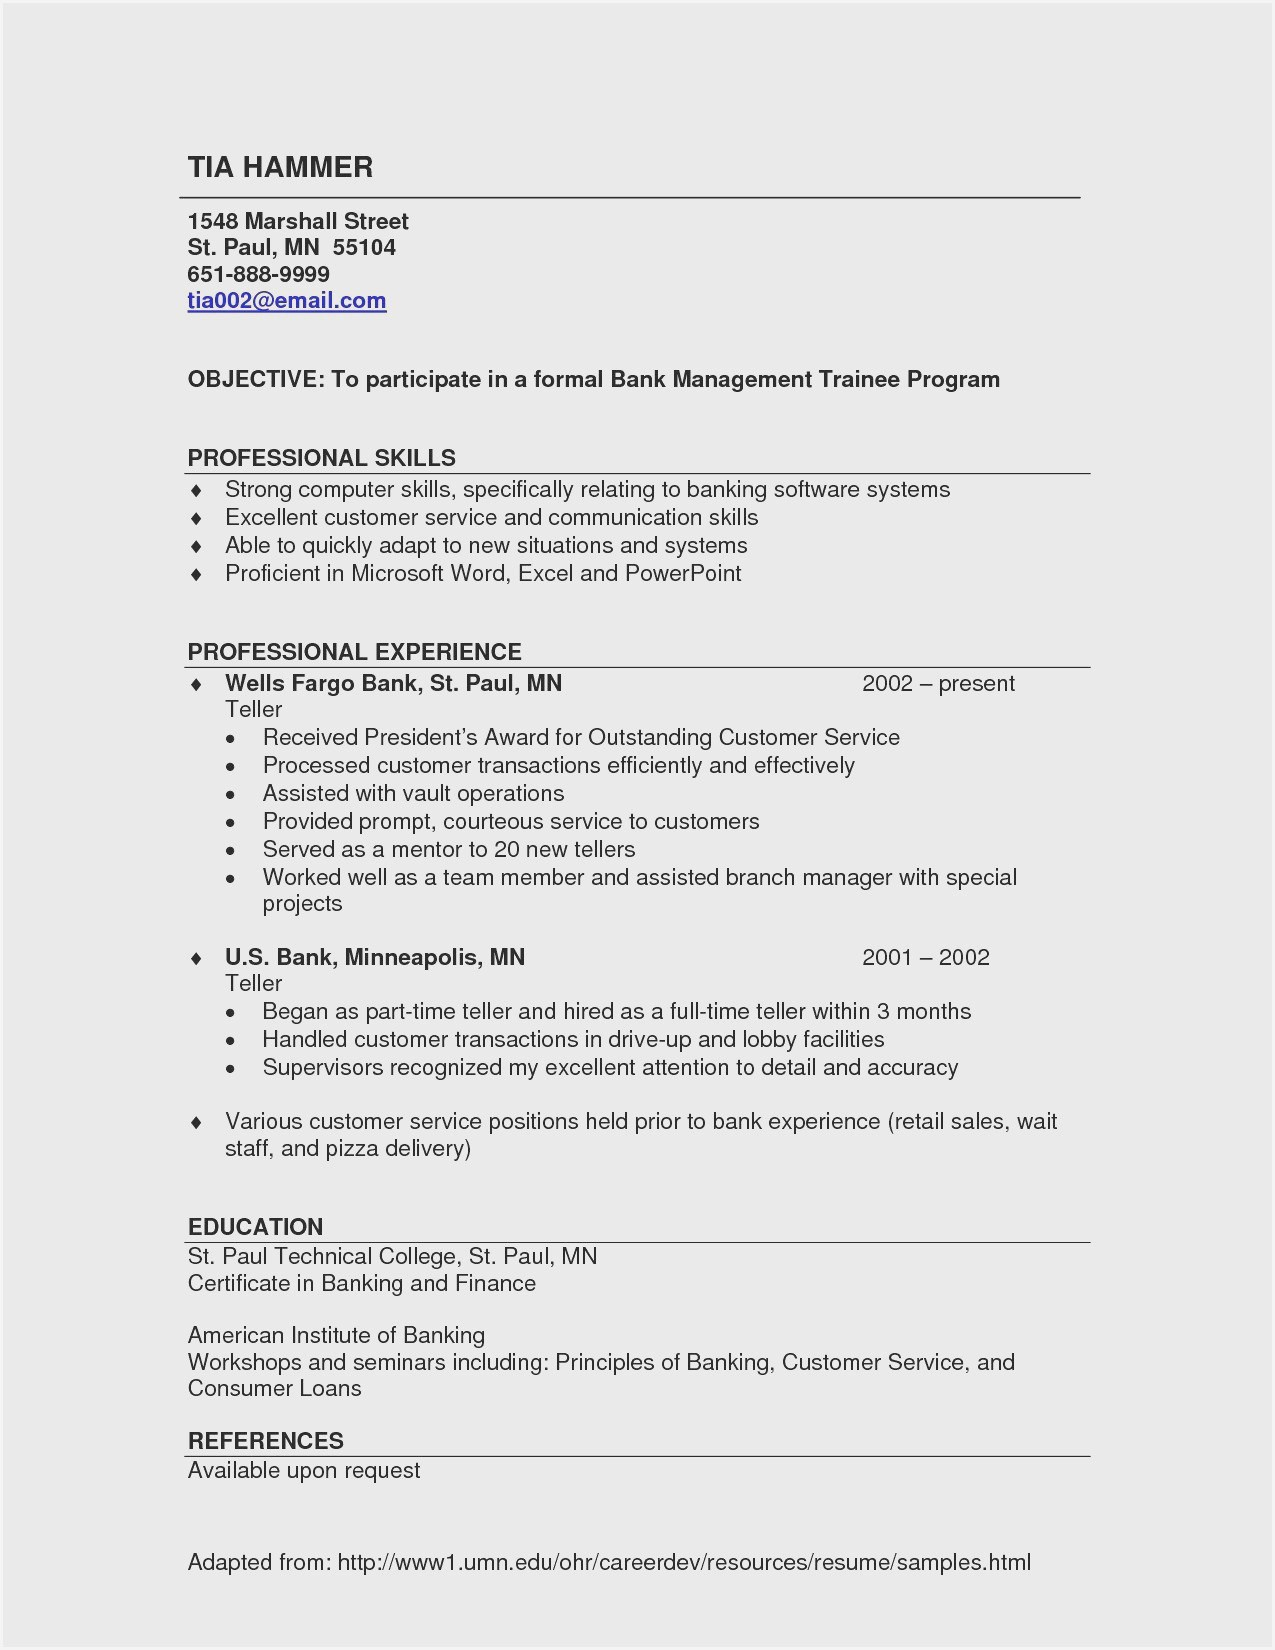 resume sample for leadership position api testing templates open office microsoft free Resume Resume For Leadership Position